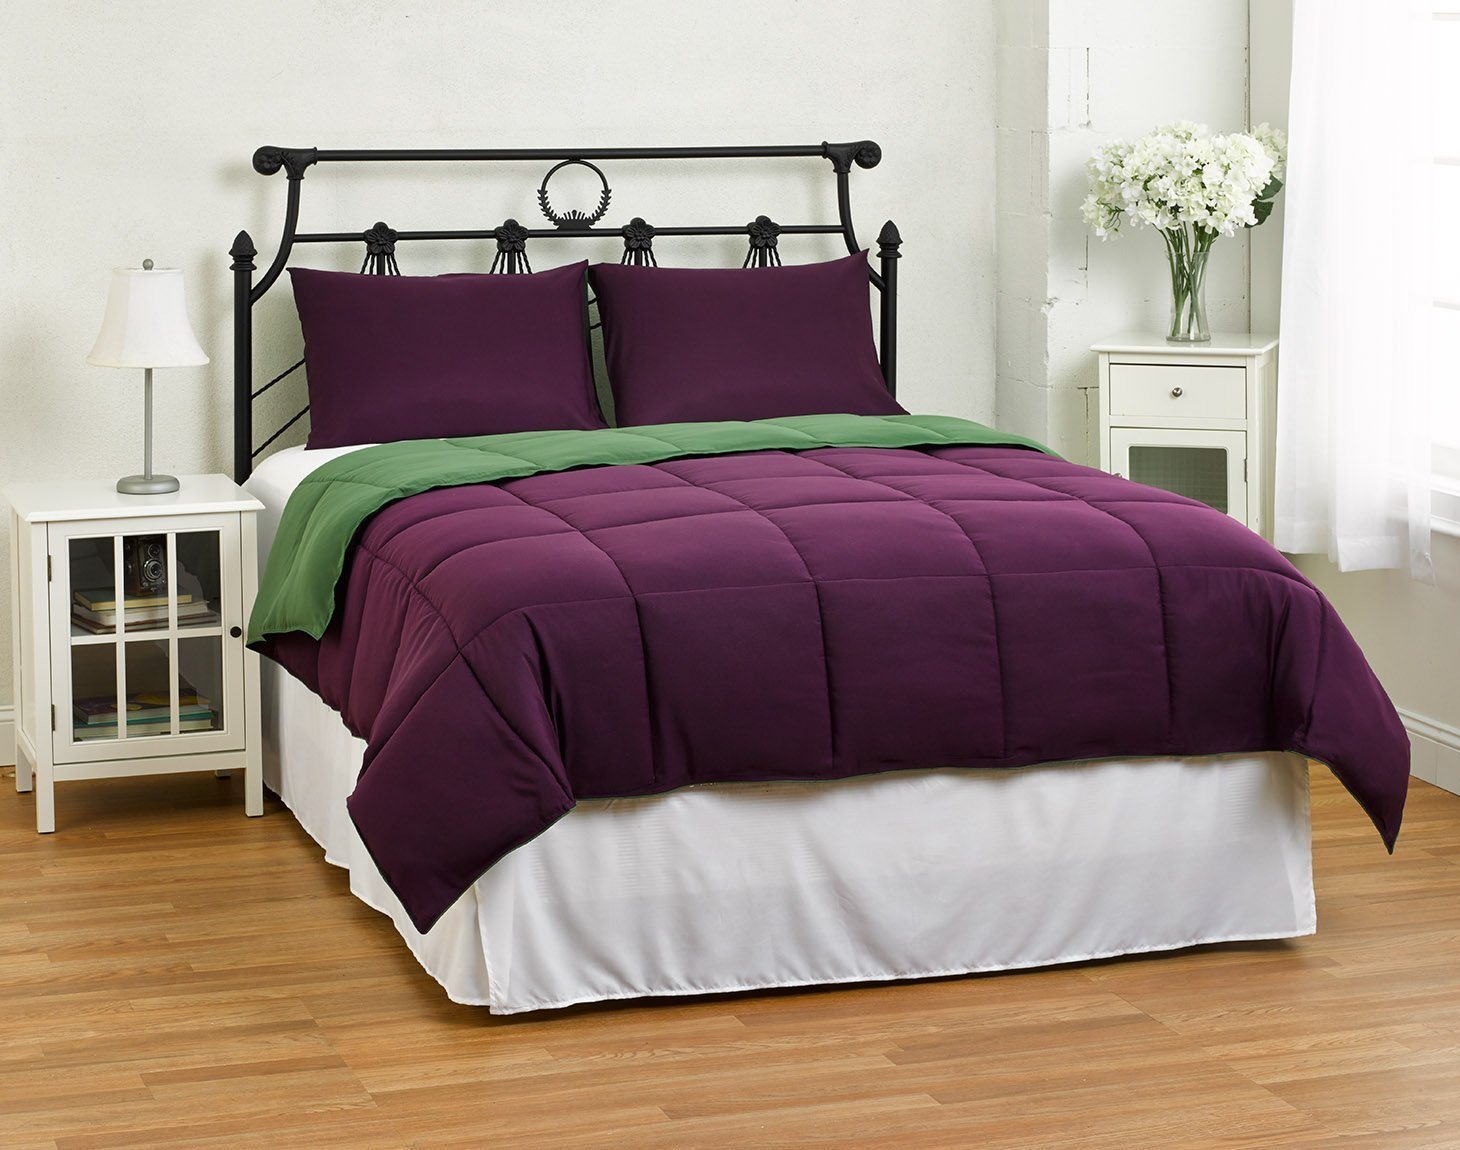 Permalink to 20 lovely pictures of Purple And Green Bedding